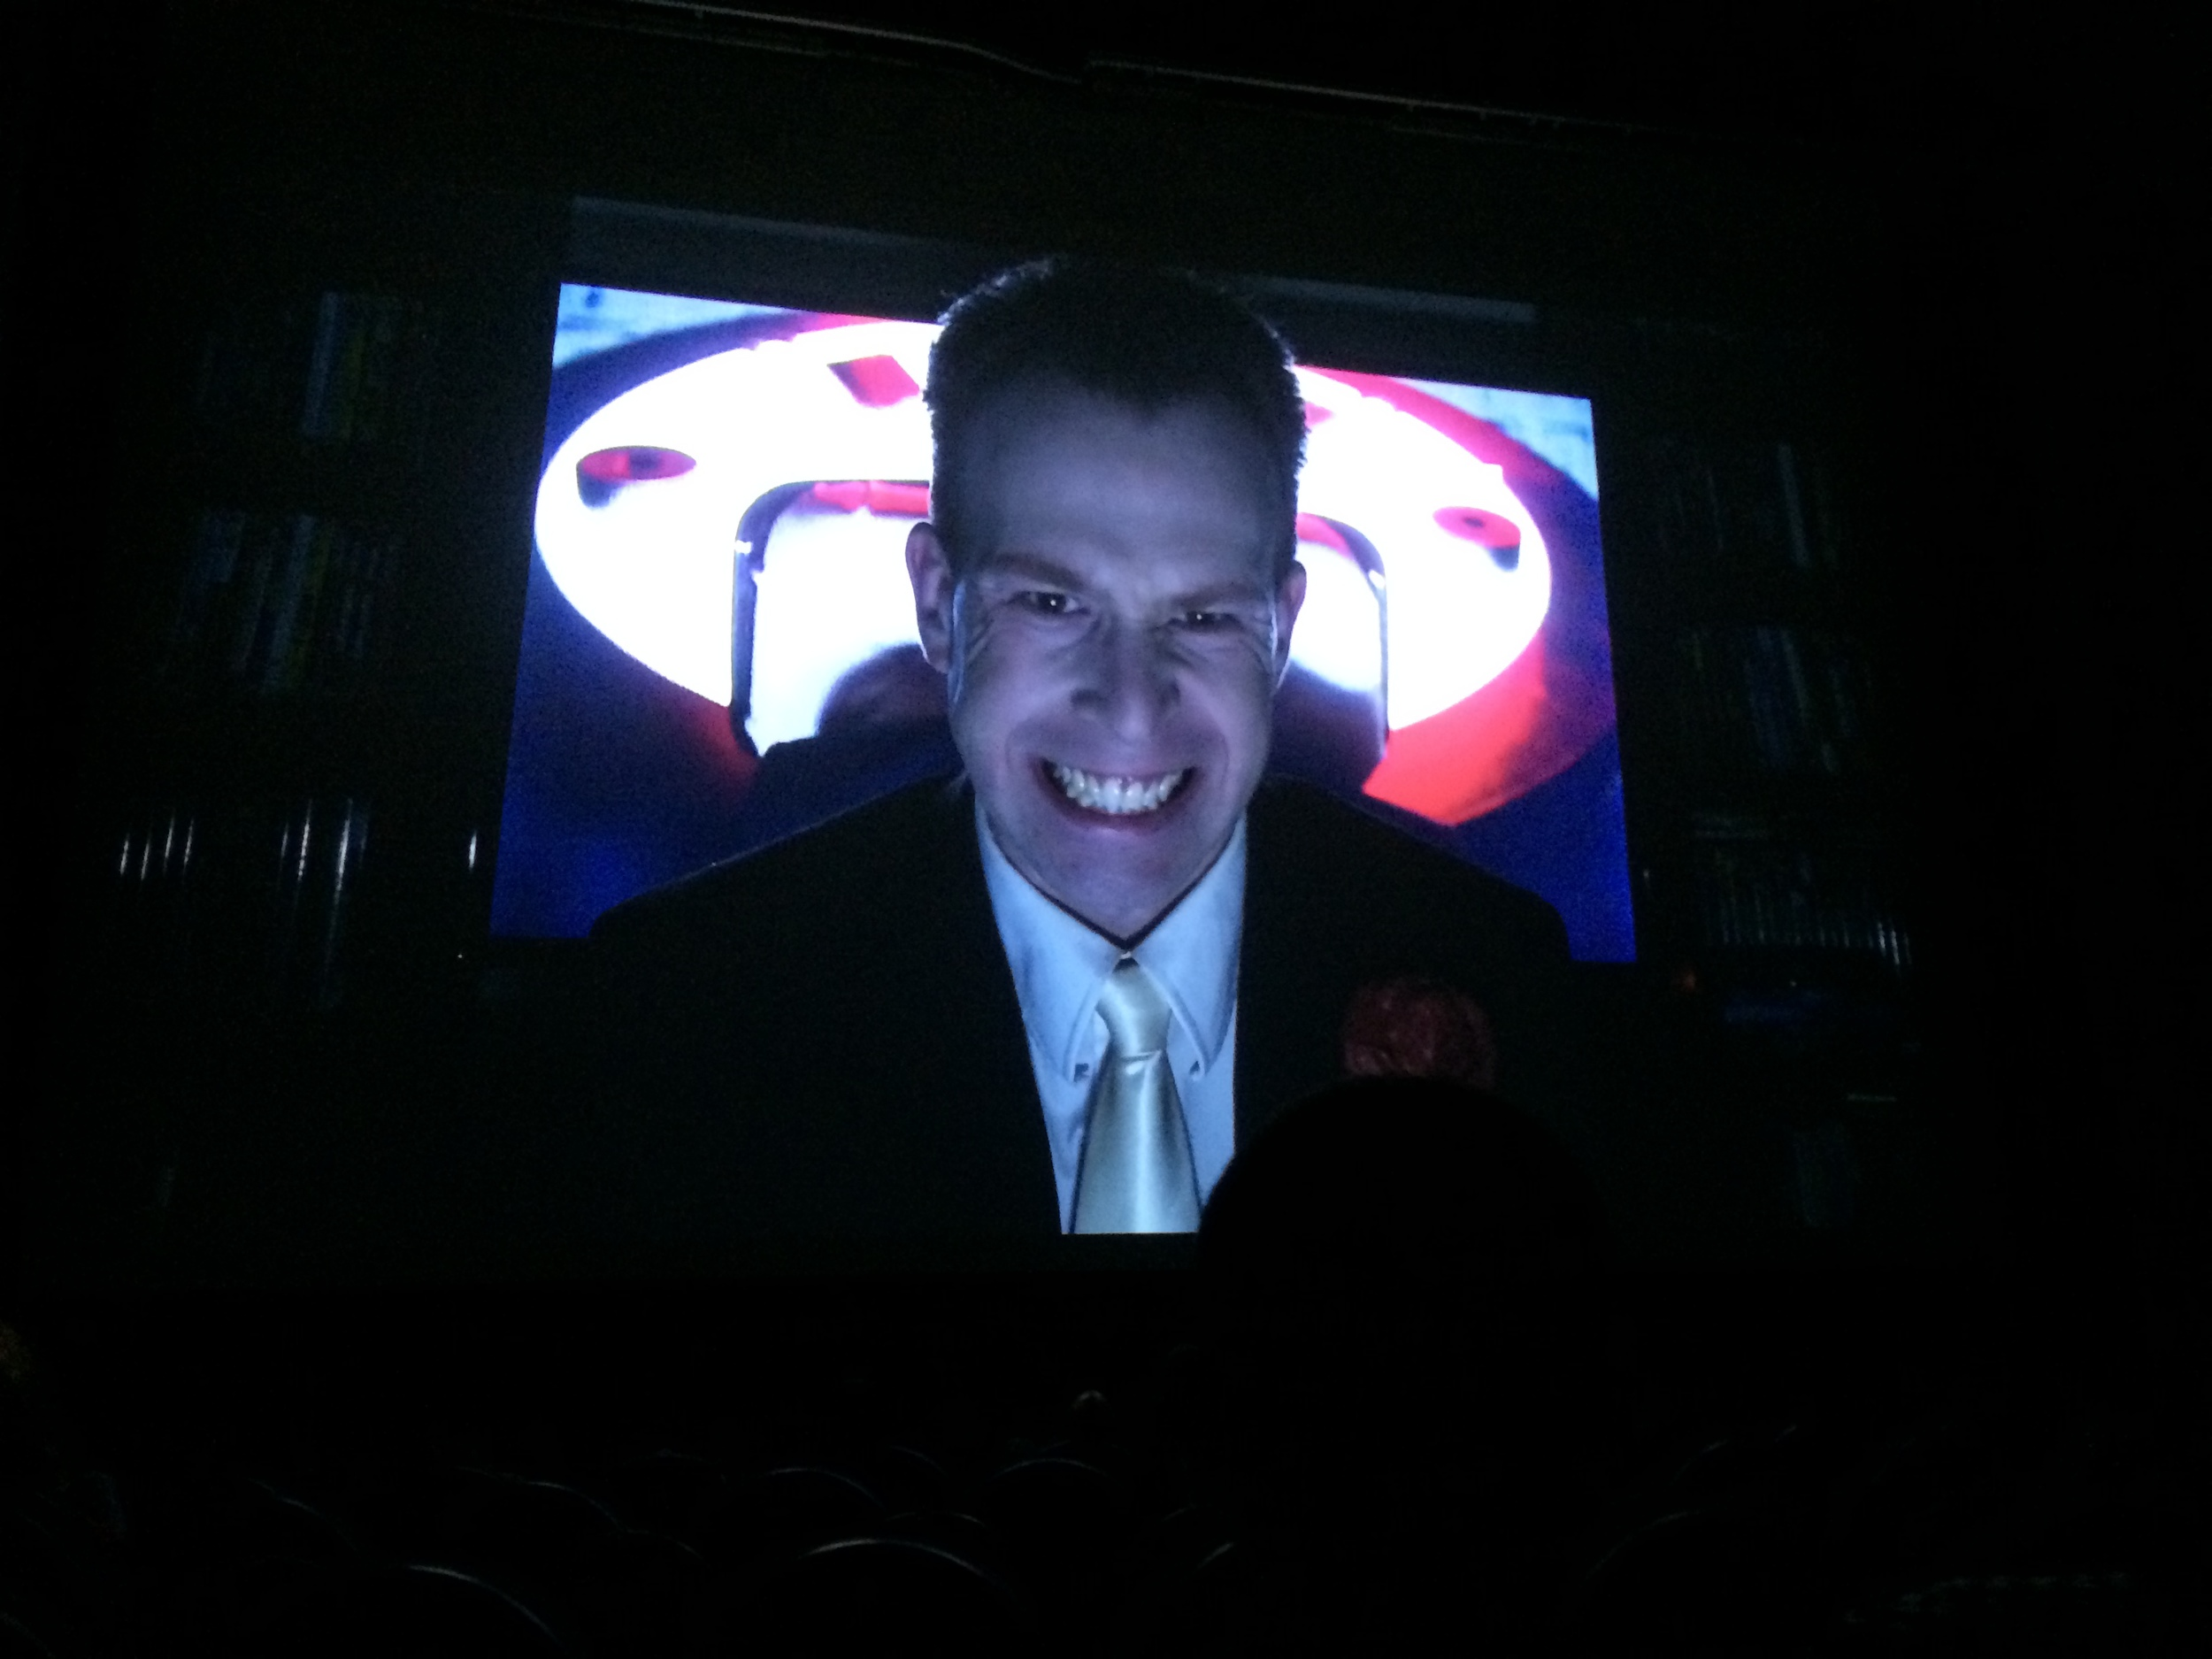 Shawn on the big screen in Berlin before the international shadow cast show